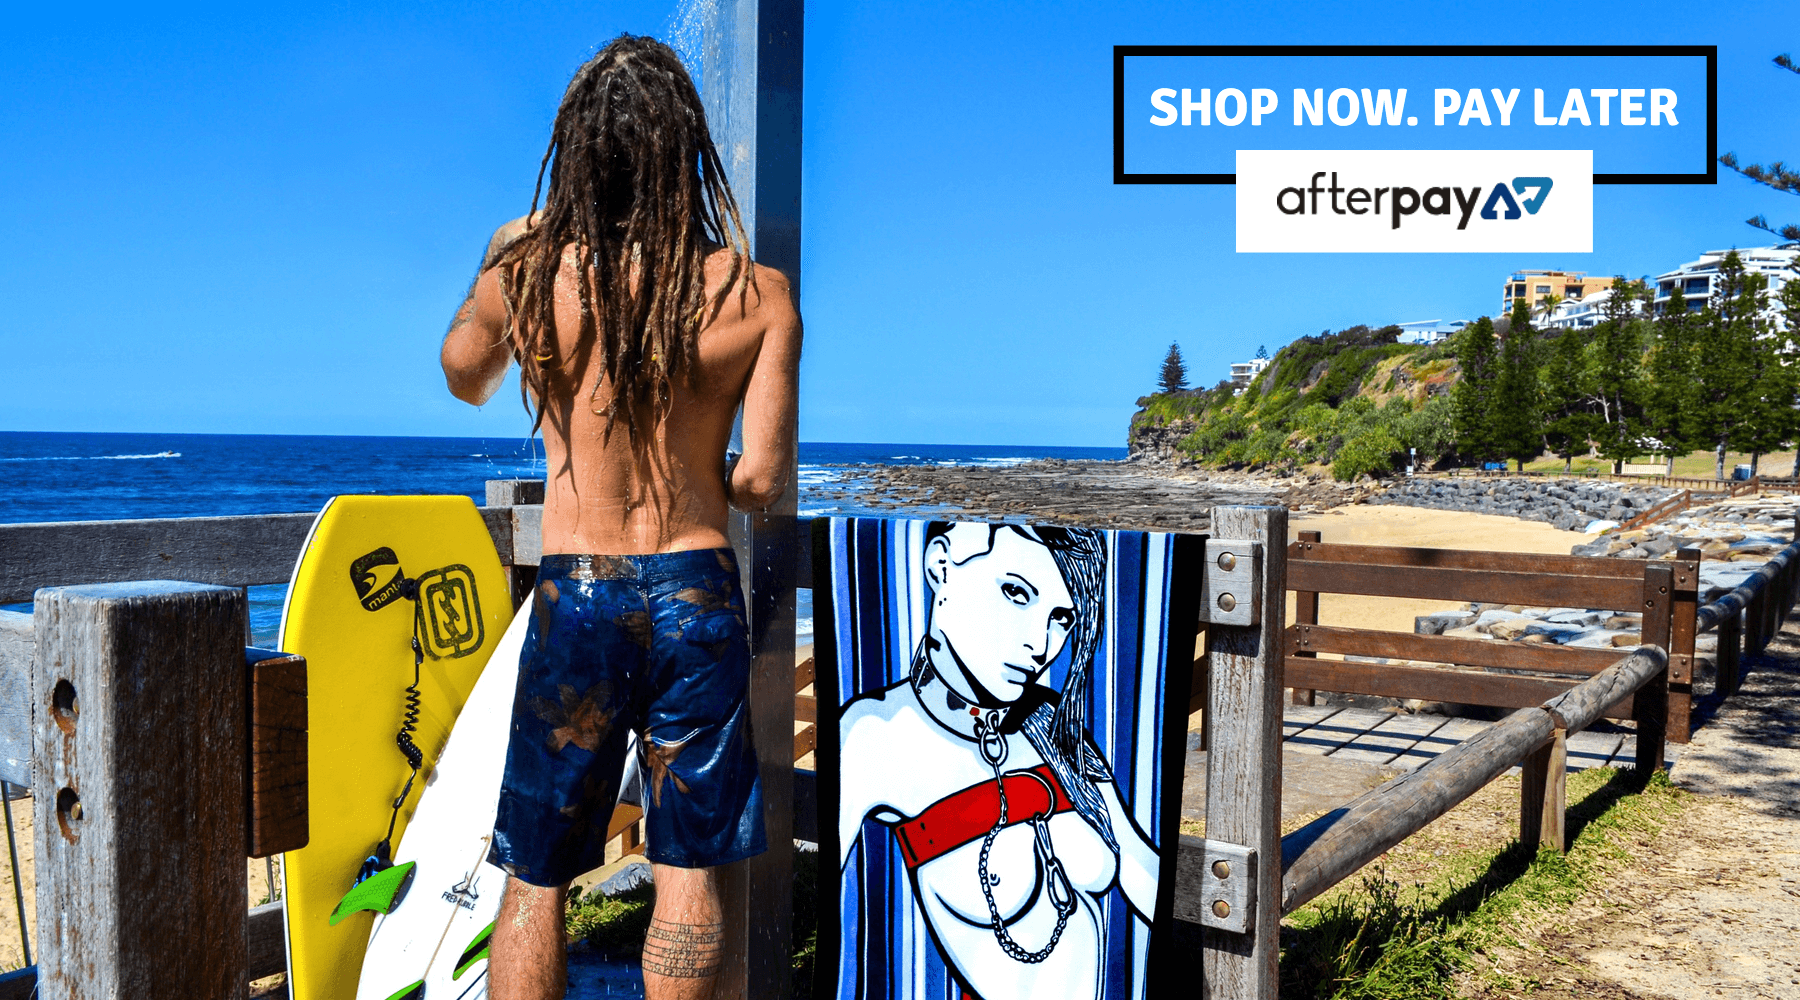 Shop Ravenged Beach Towels for Surf, Gym, Pool & Bath.